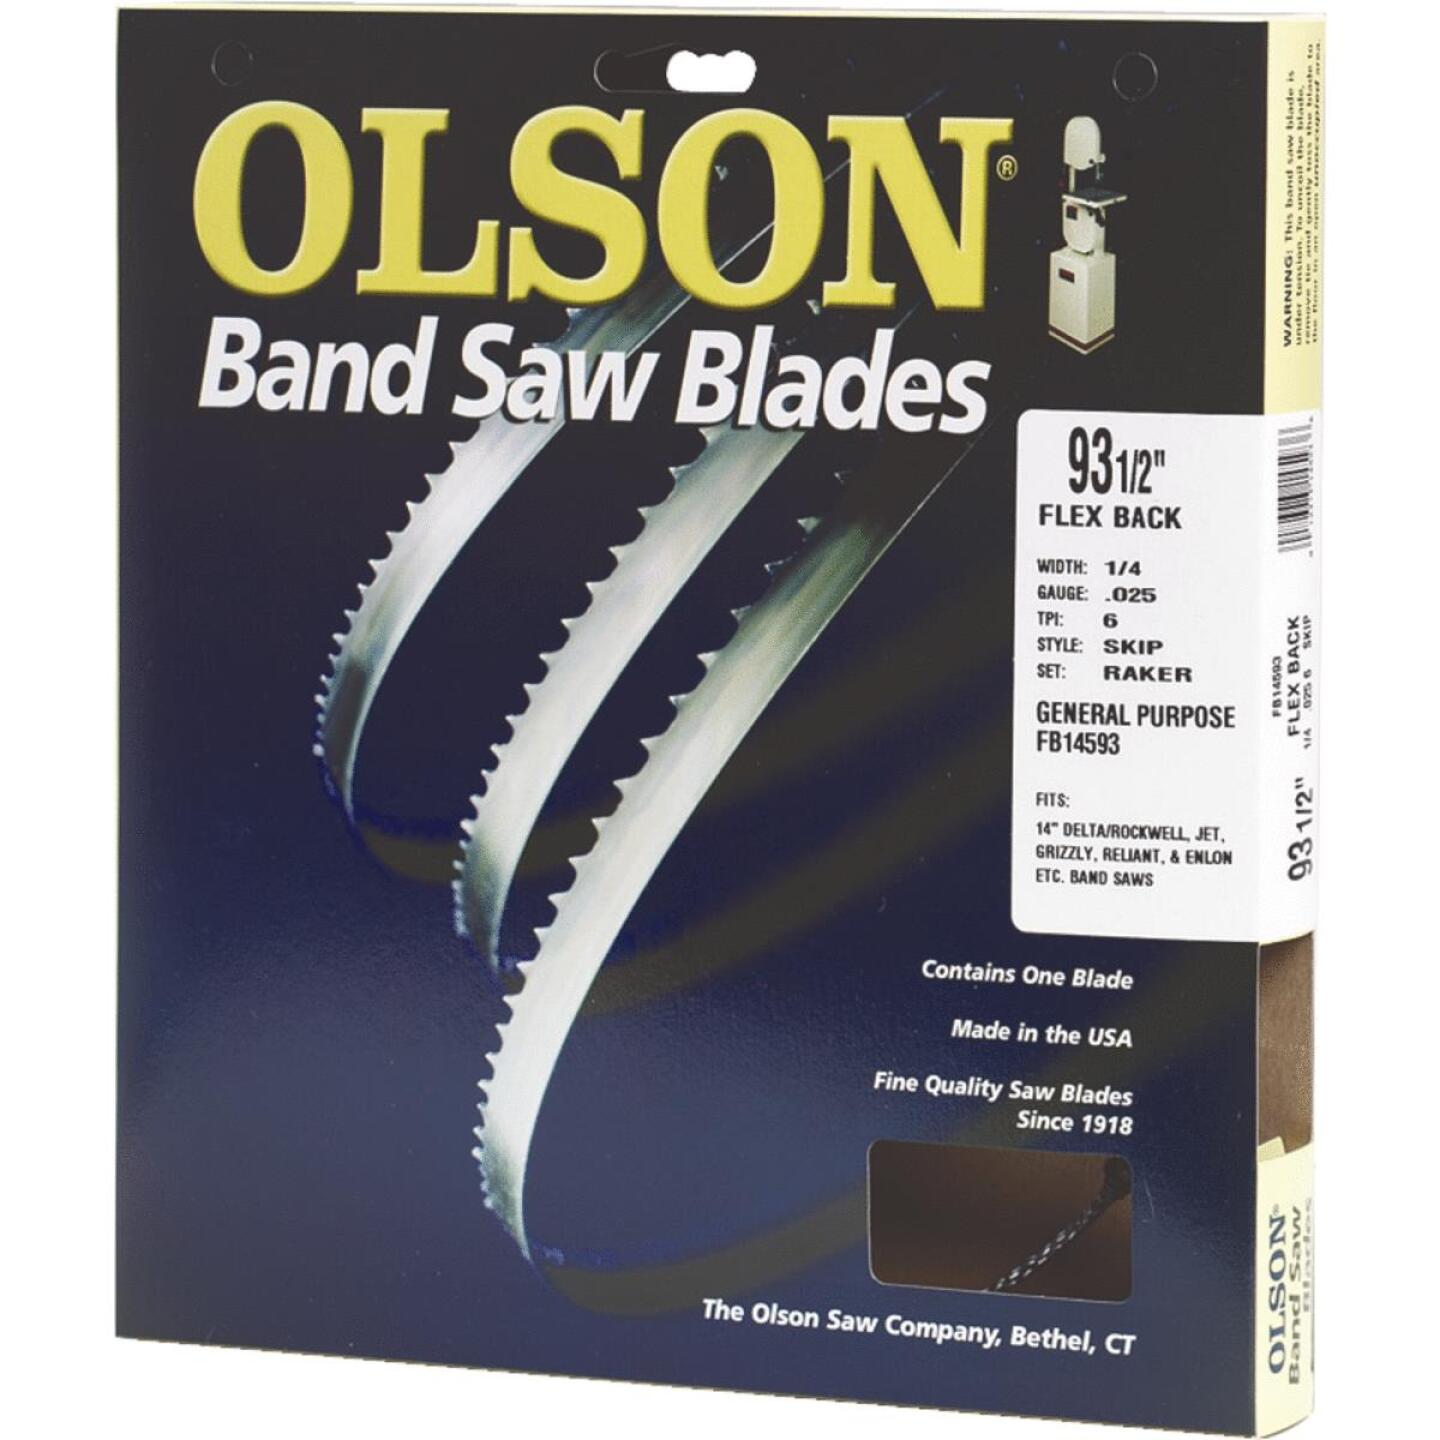 Olson 93-1/2 In. x 1/8 In. 14 TPI Regular Flex Back Band Saw Blade Image 1